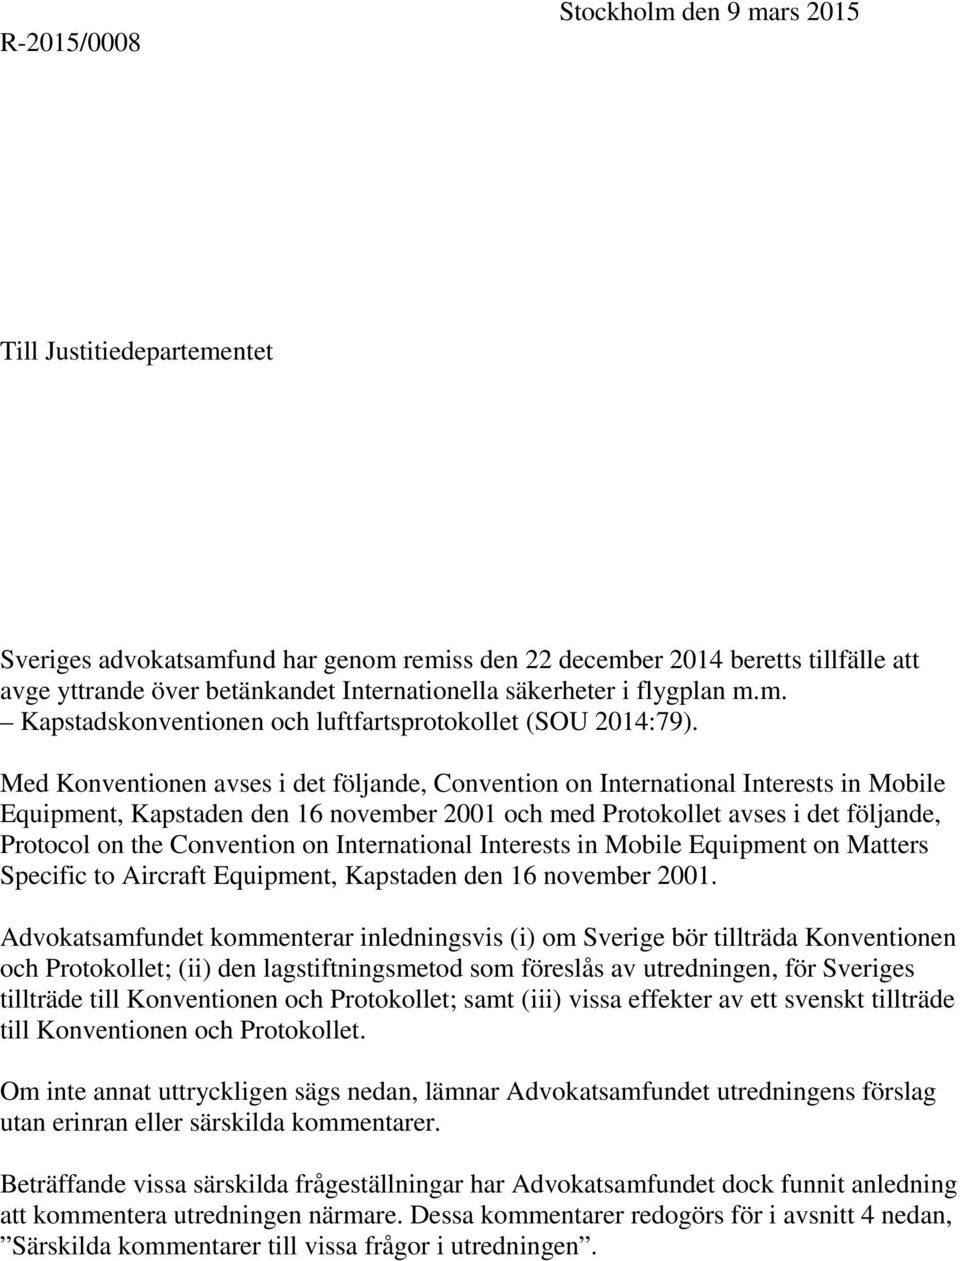 Med Konventionen avses i det följande, Convention on International Interests in Mobile Equipment, Kapstaden den 16 november 2001 och med Protokollet avses i det följande, Protocol on the Convention